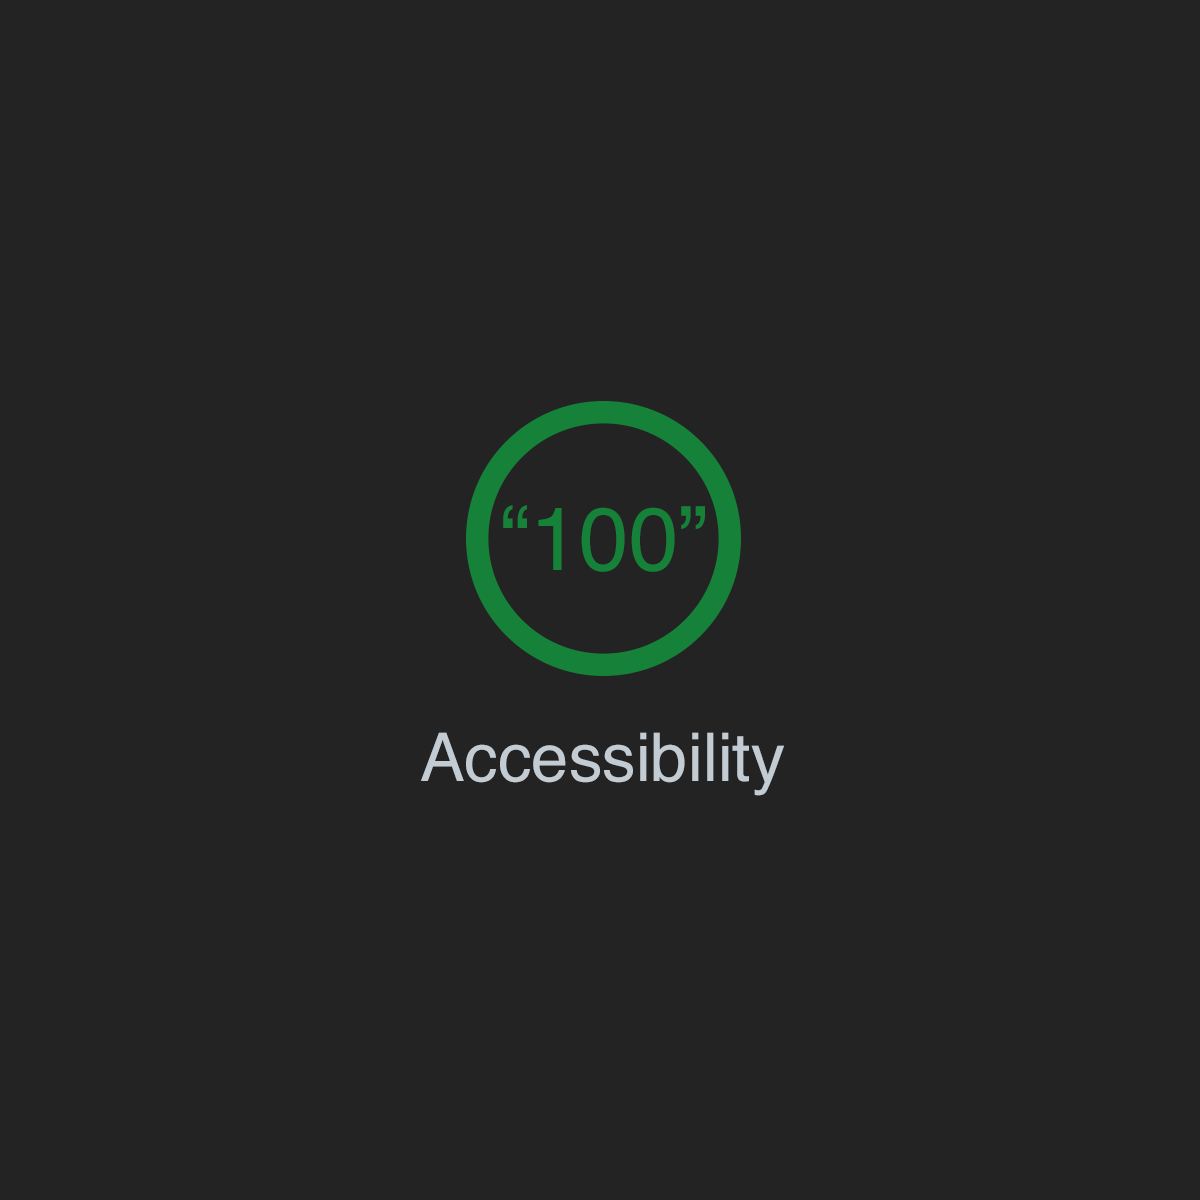 Building the most inaccessible site possible with a perfect